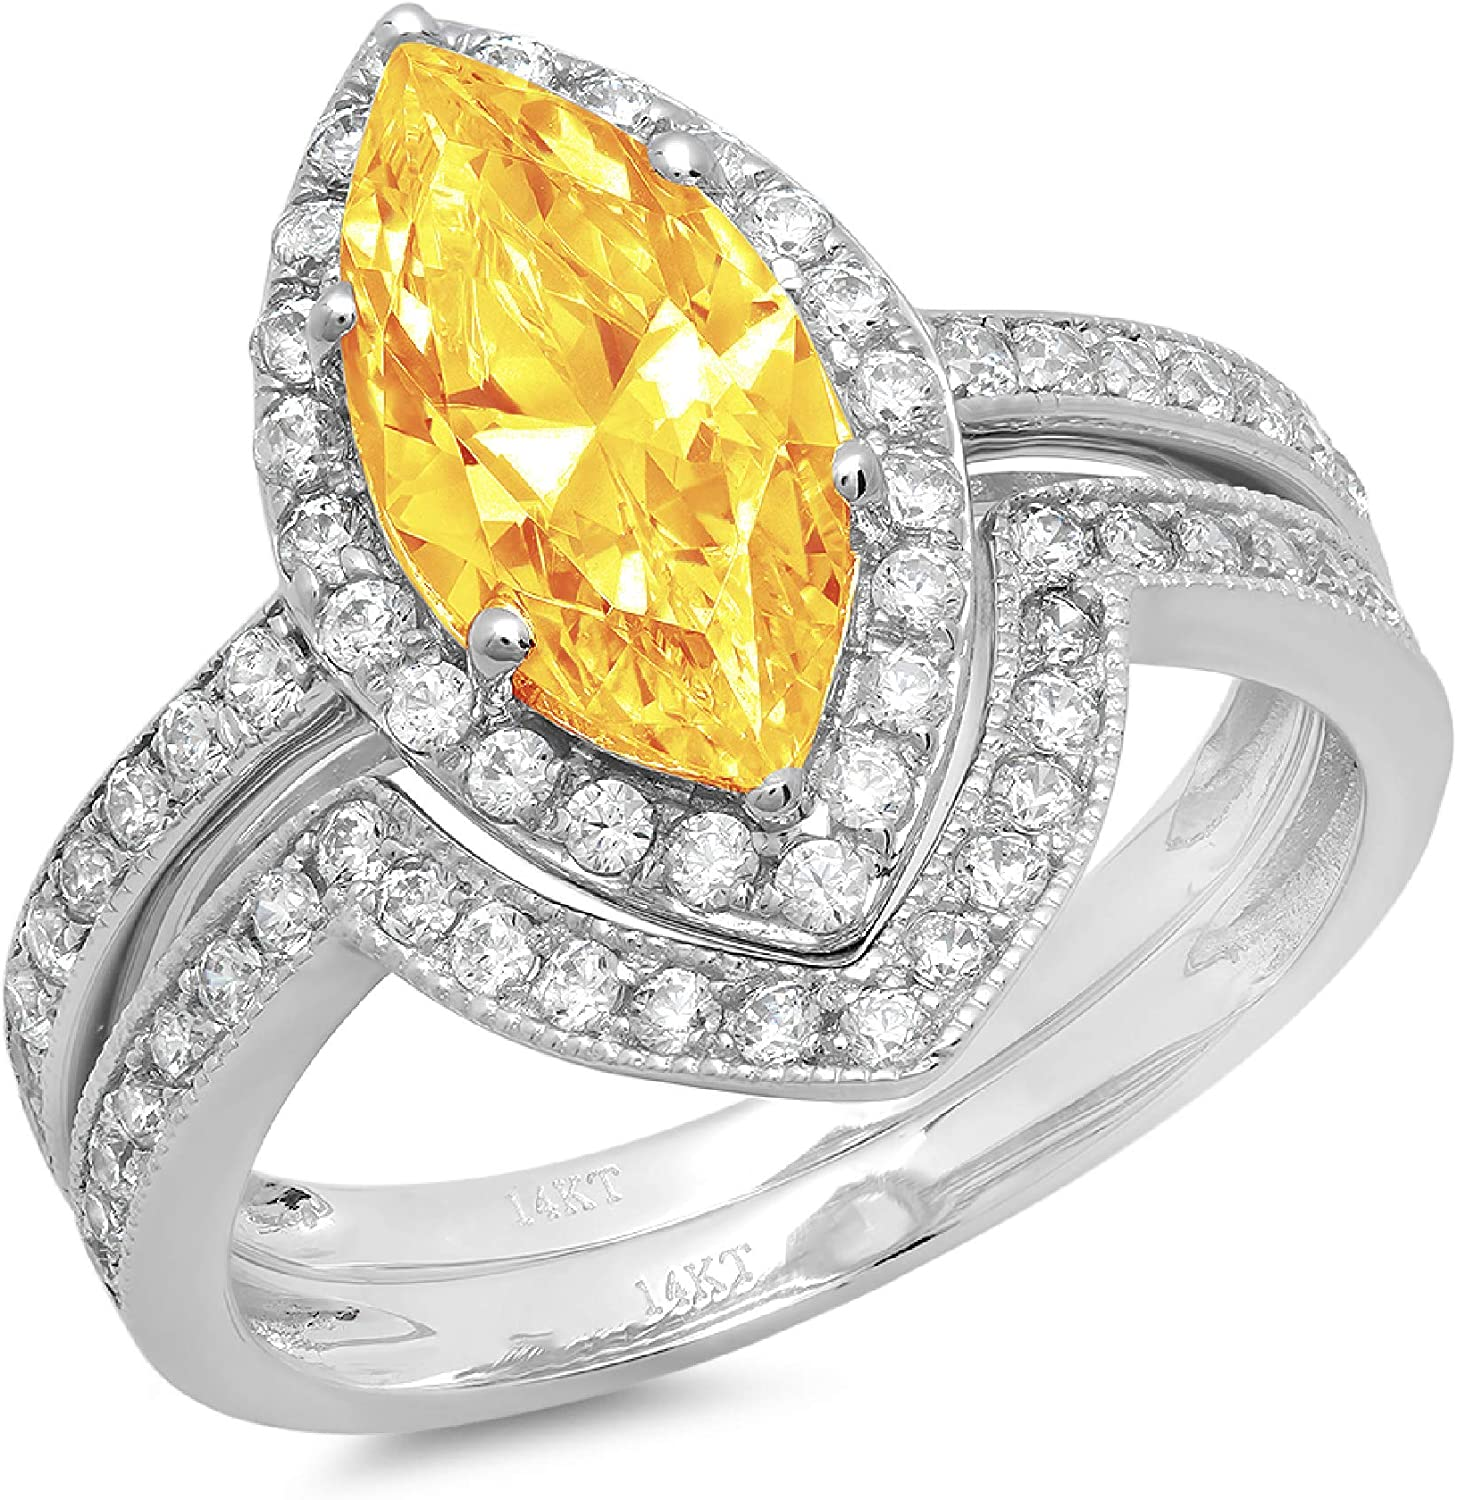 2.1ct Marquise Round Cut Pave Halo Solitaire with Accent VVS1 Ideal Natural Yellow Citrine Engagement Promise Designer Anniversary Wedding Bridal Ring band set 14k White Gold